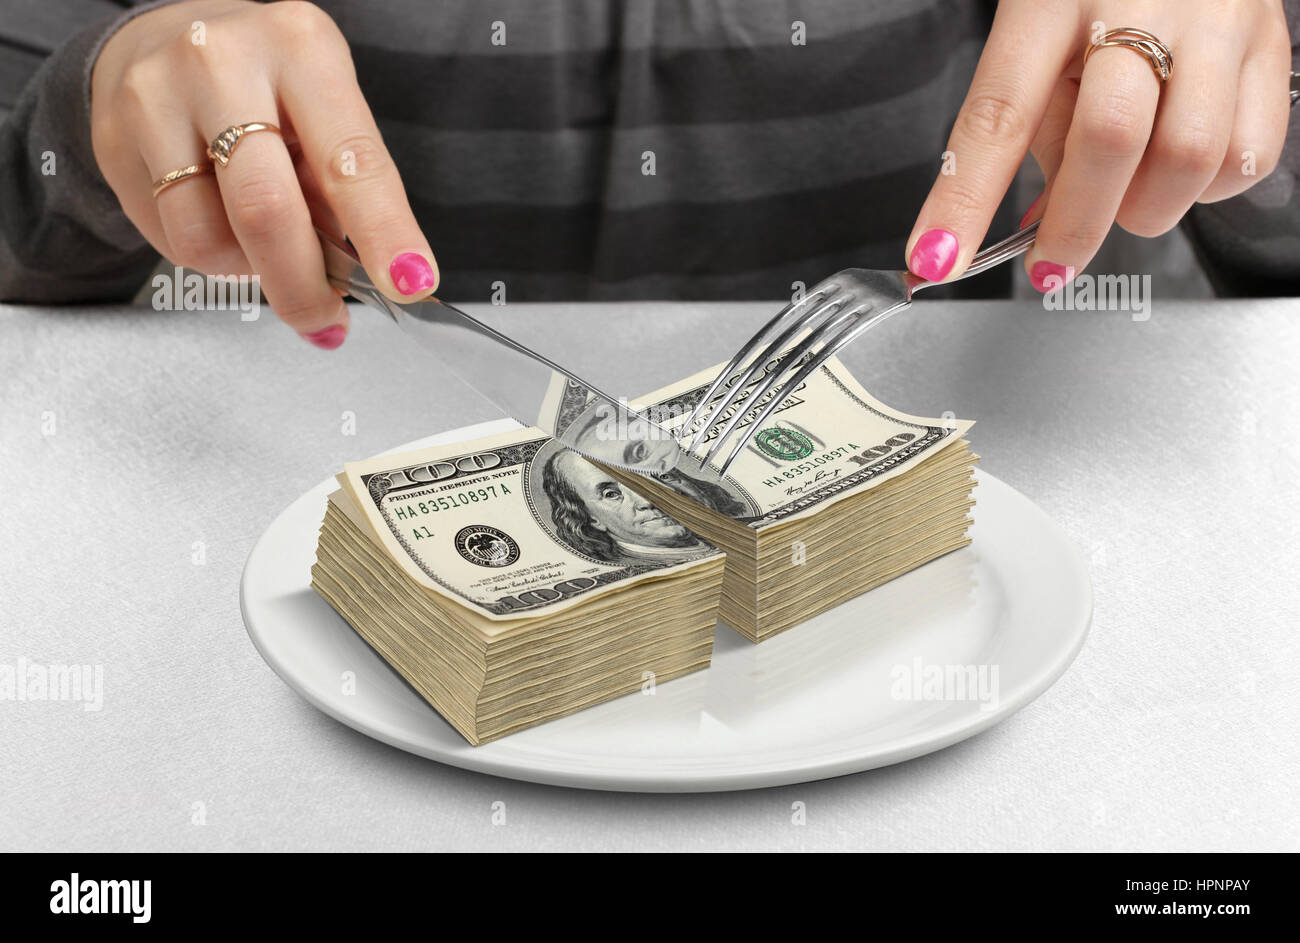 Cut money on plate, cut budget concept - Stock Image